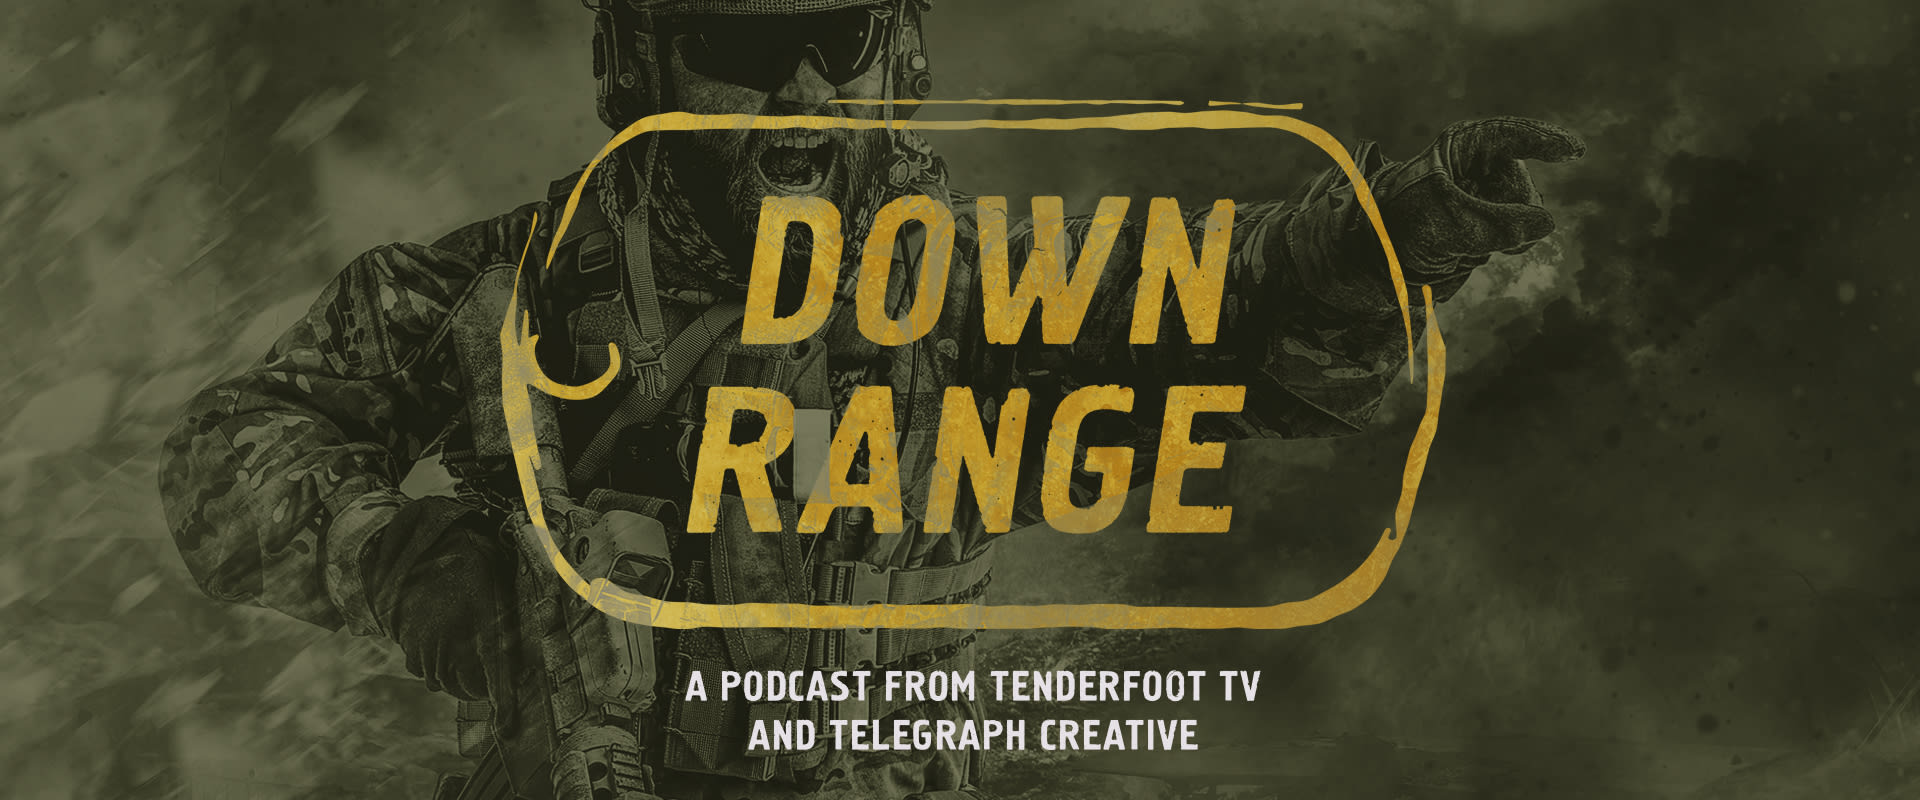 """Telegraph Creative teams up with Podcast Juggernaut Tenderfoot TV to produce """"Down Range"""""""